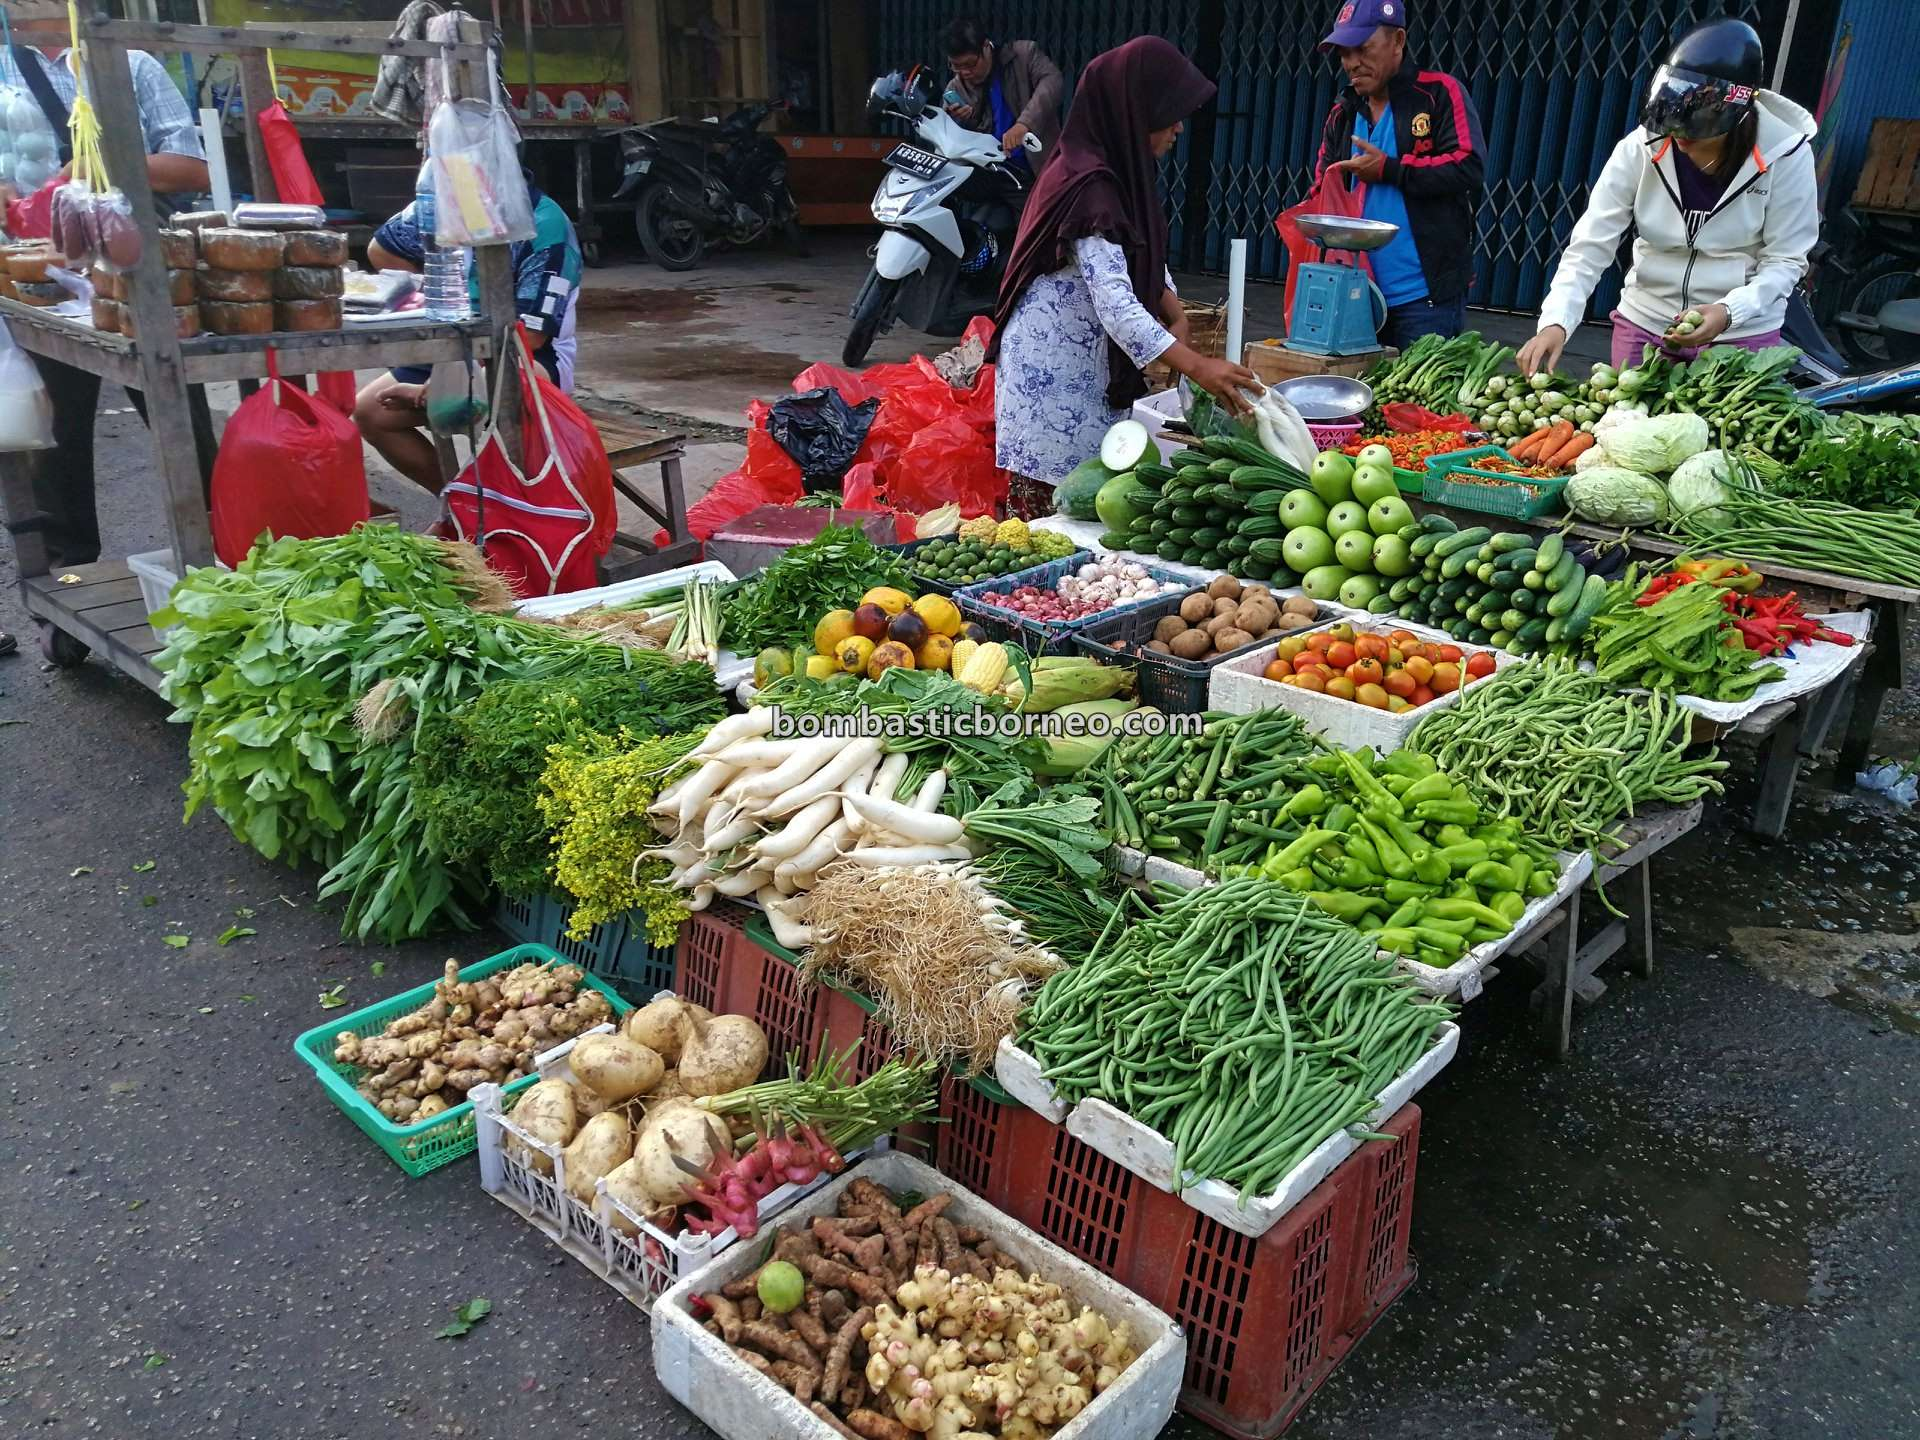 Pasar Turi, Local Market, authentic, traditional, backpackers, destination, Indonesia, West Kalimantan, kota Singkawang, sayuran, vegetable, Tourism, tourist attraction, travel guide, Cross Border, Borneo,